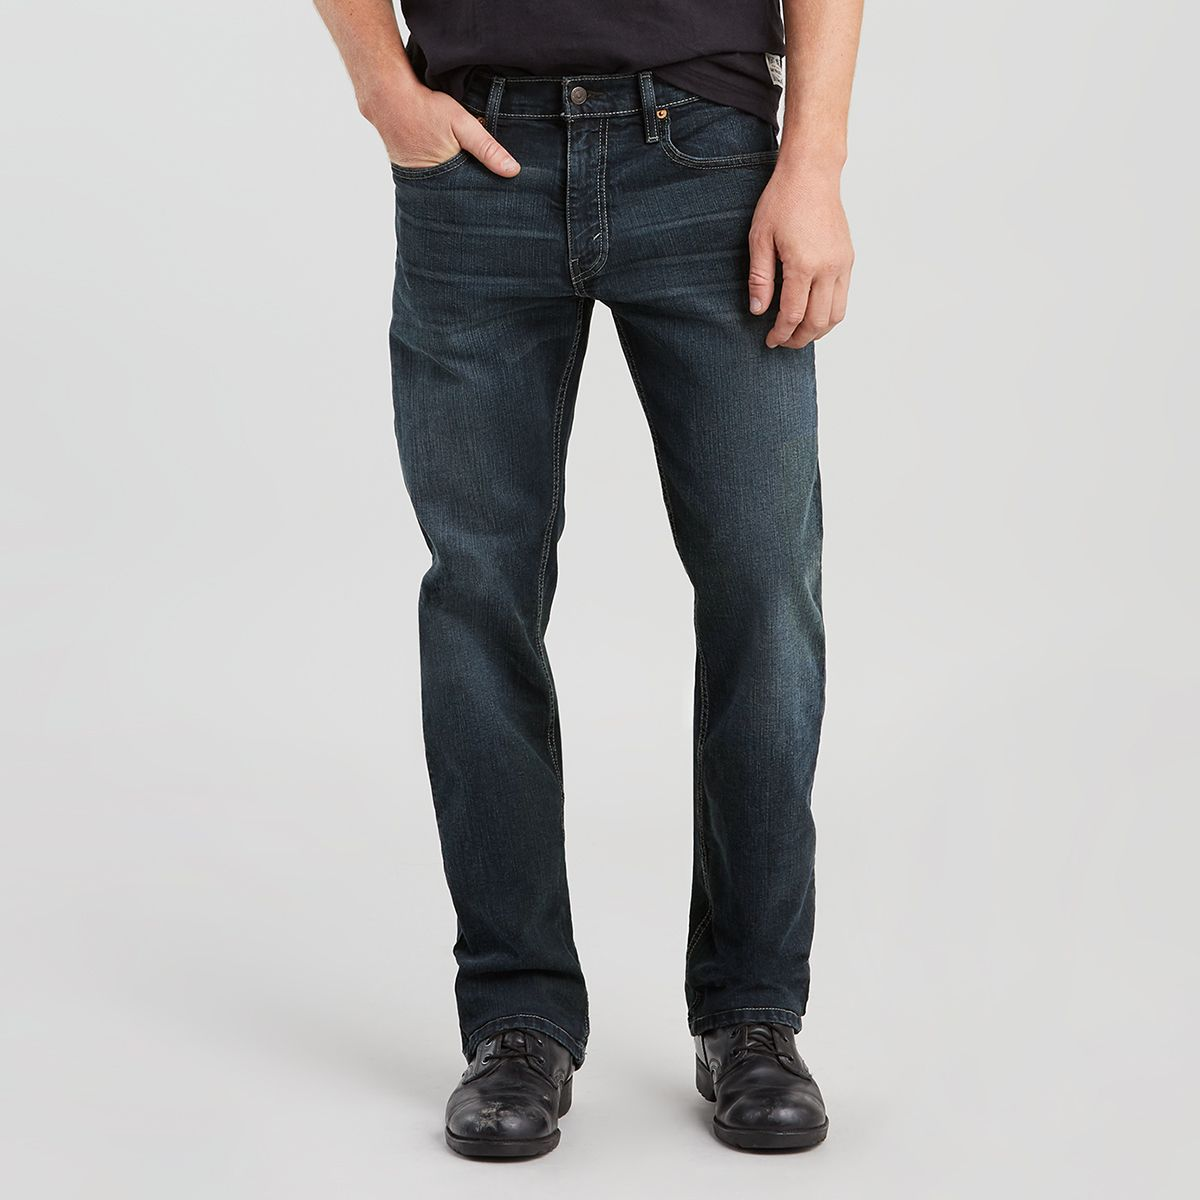 e9b1b42f28939 Colored Levis Jeans for Men - Macy s